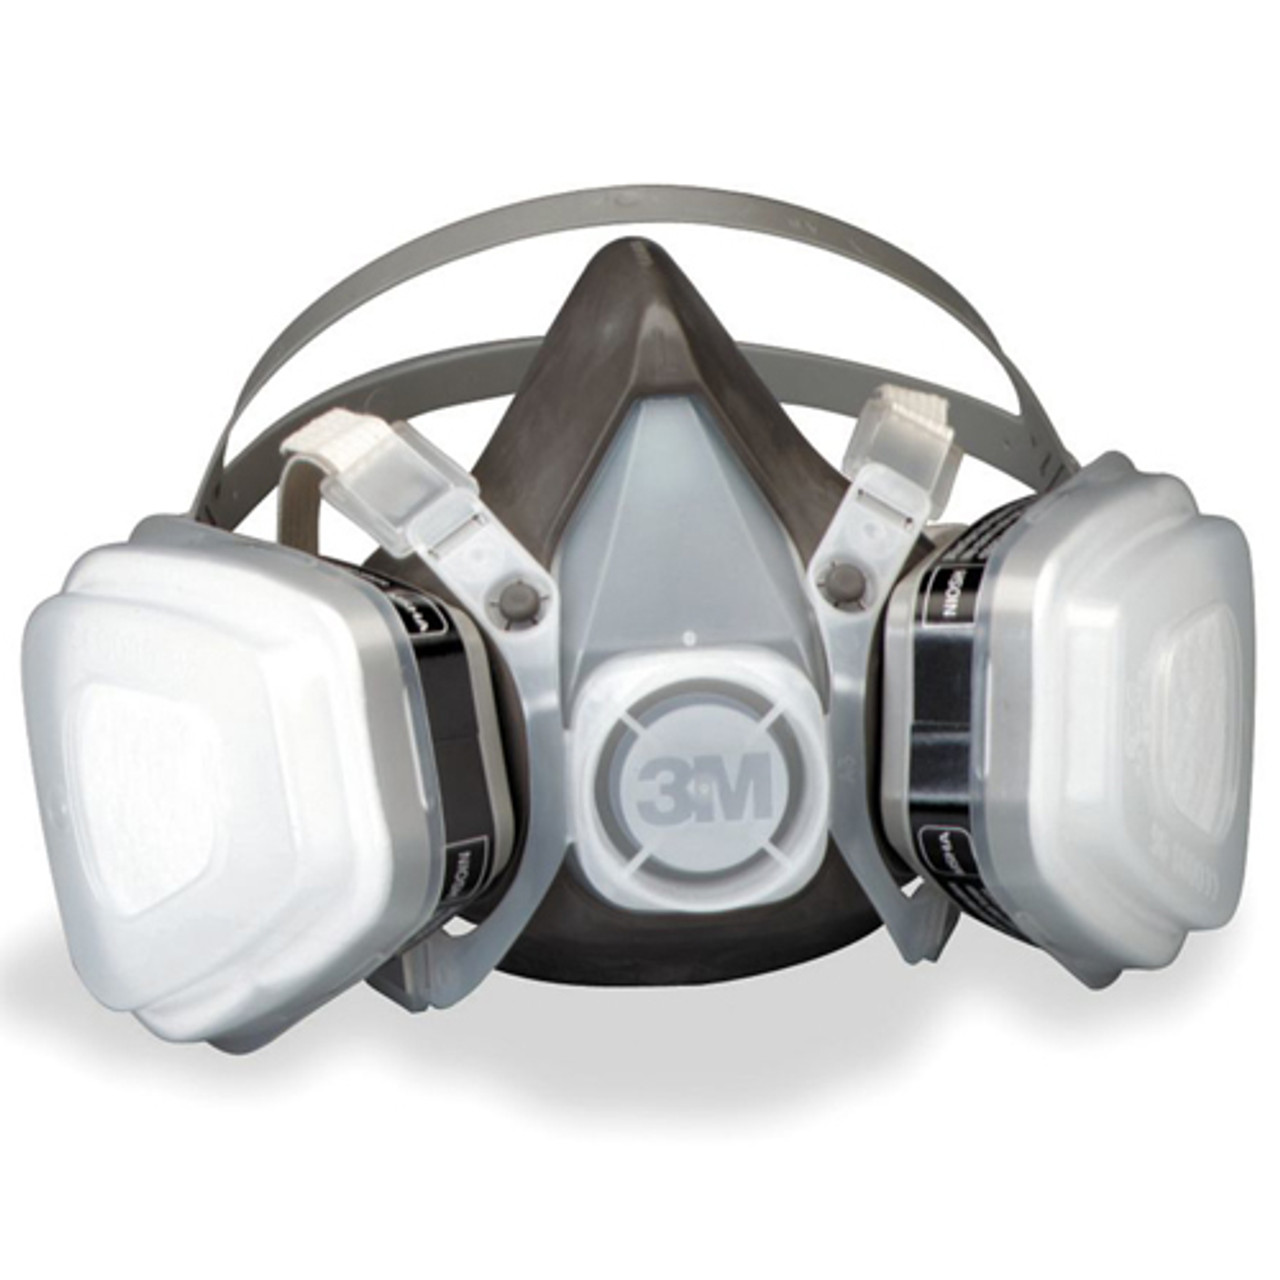 3m reusable all-purpose valved safety mask